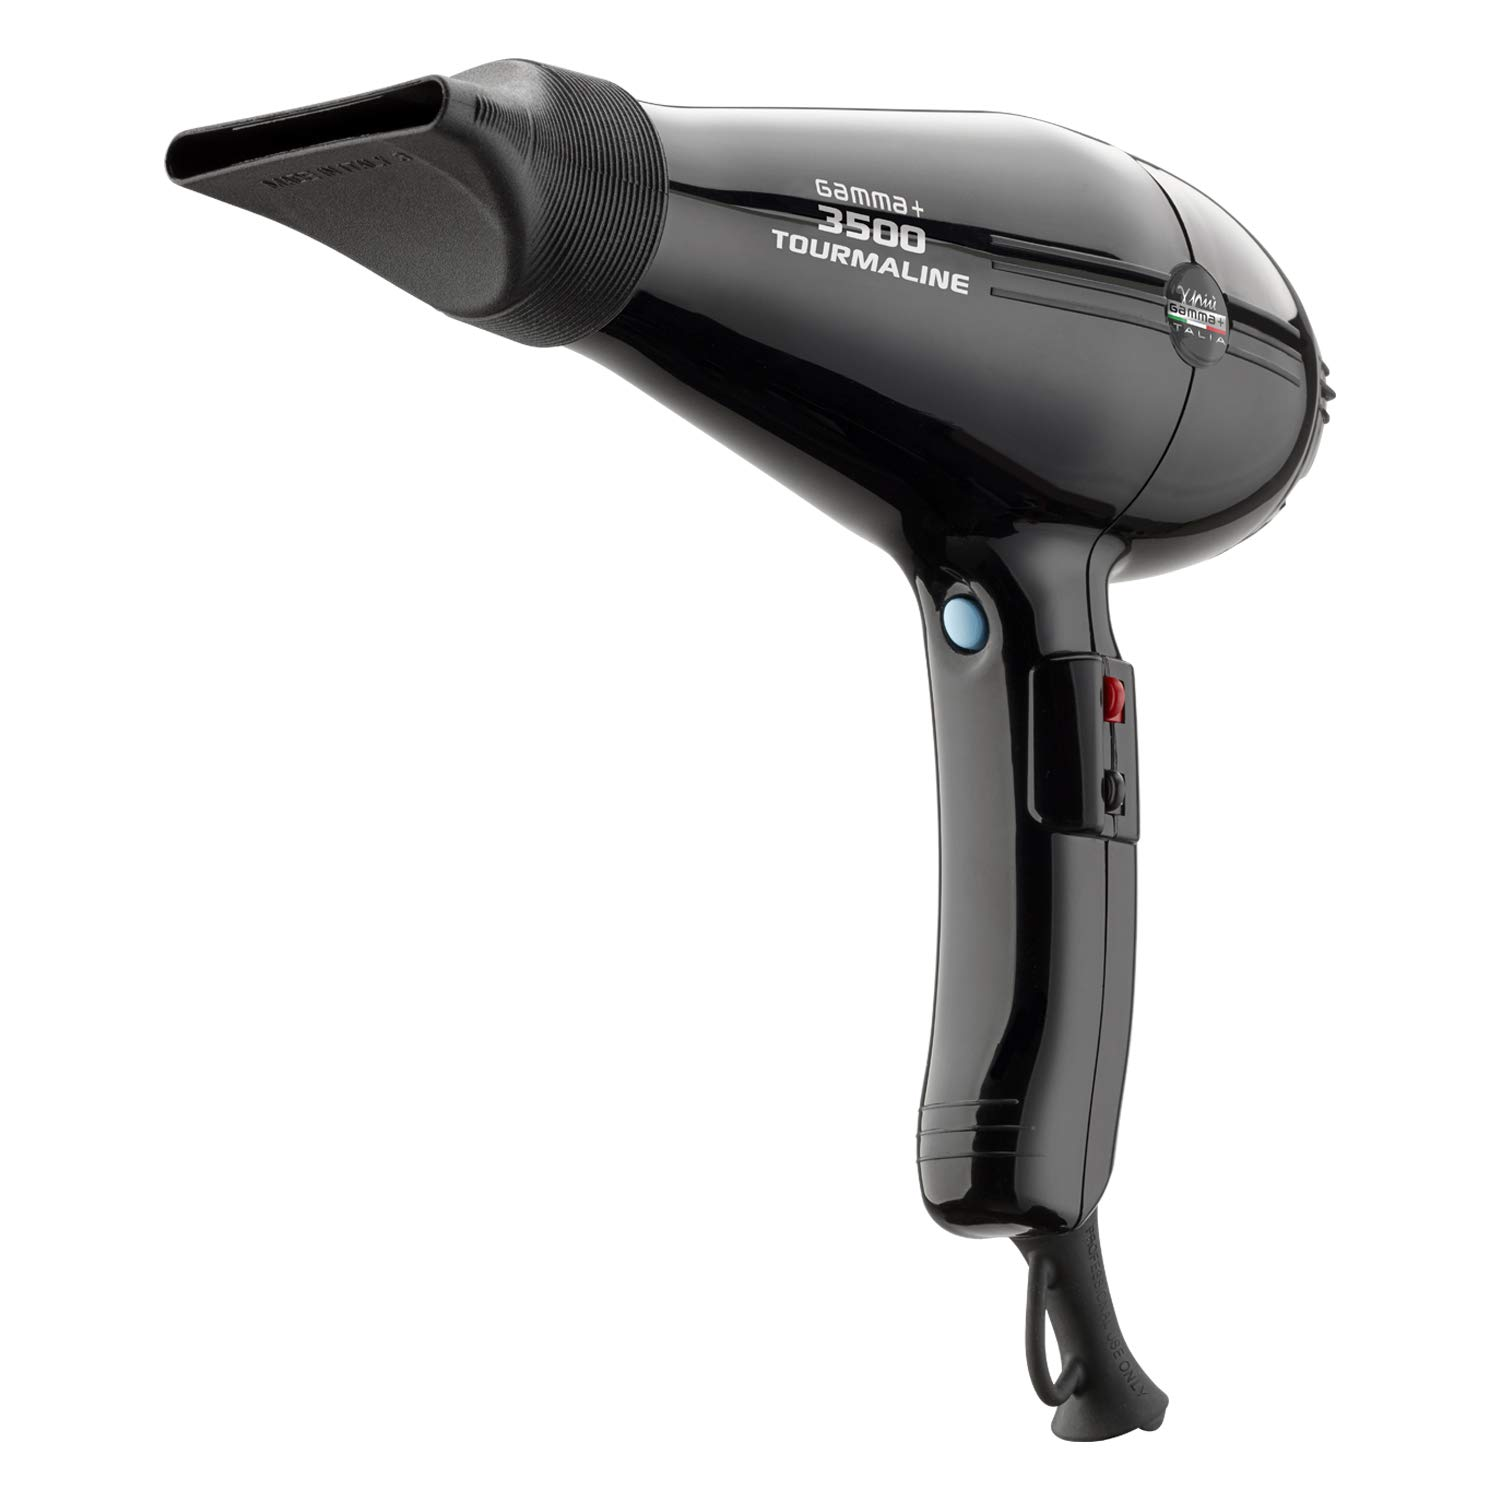 GAMMAPI PI 3500 Tourmaline – Ionic Hair Dryer with Powerful Professional AC Motor, Highest Power and Heat, Made in Italy by GammaPiu – Black